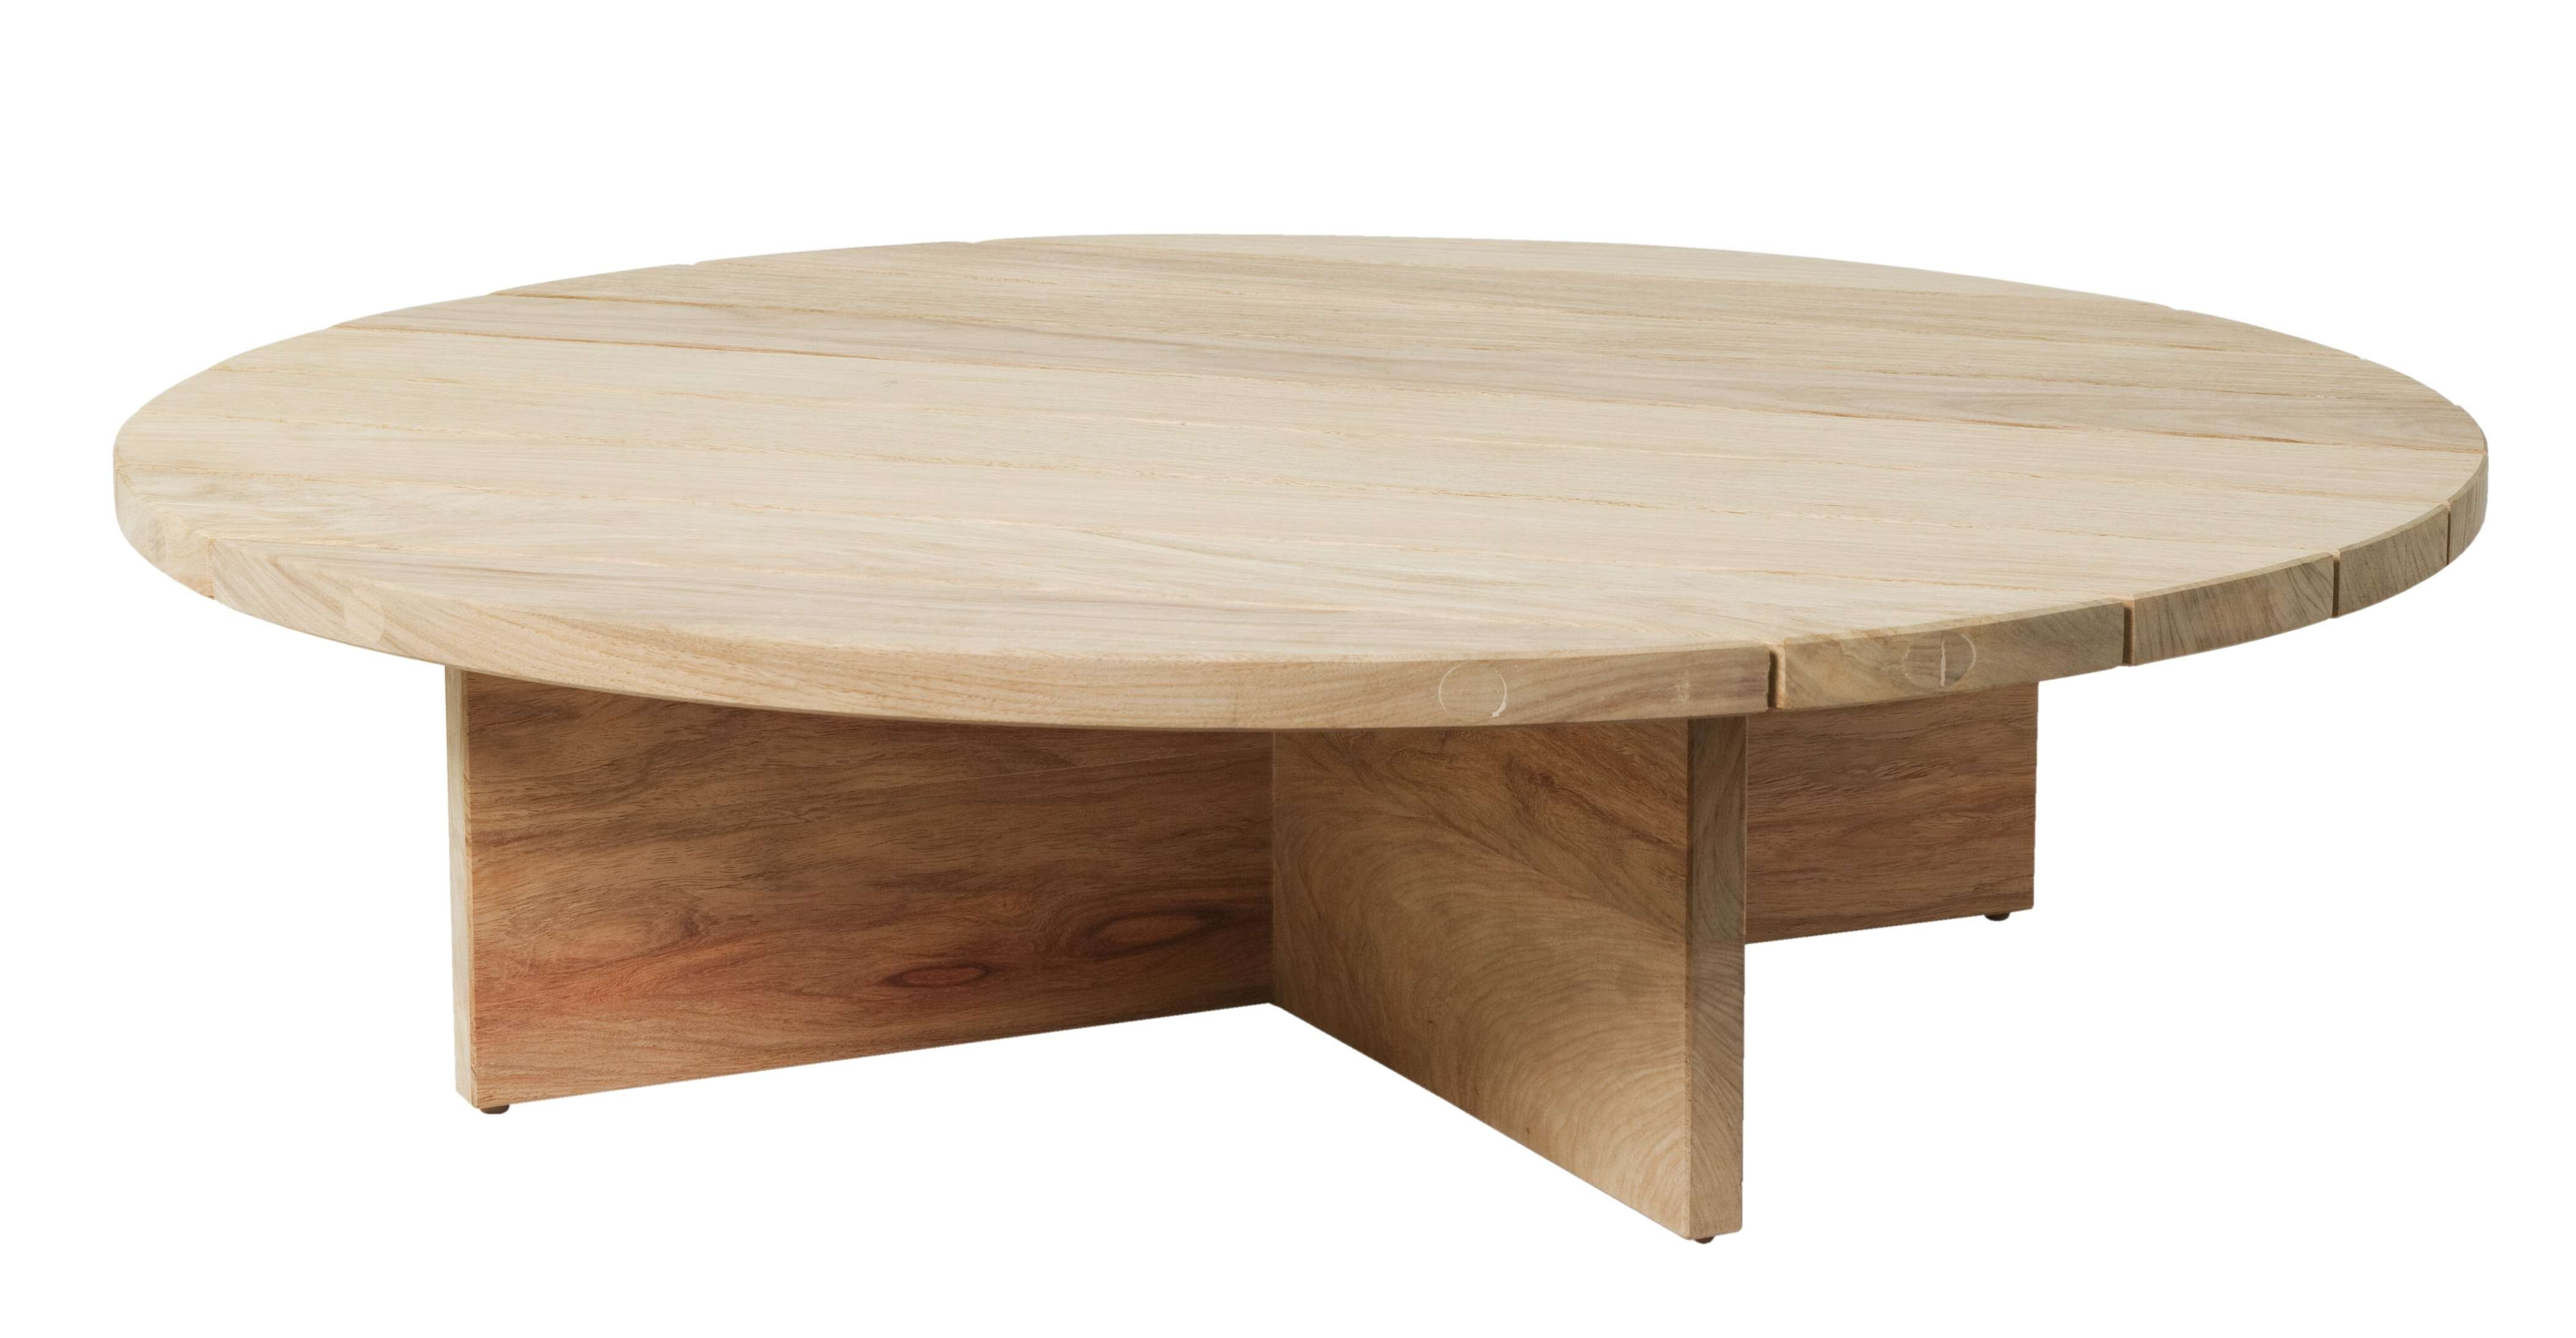 Coffee Tables : Large Round Coffee Table Tray Home Decorati Thippo Pertaining To Well Known Big Low Coffee Tables (View 15 of 20)